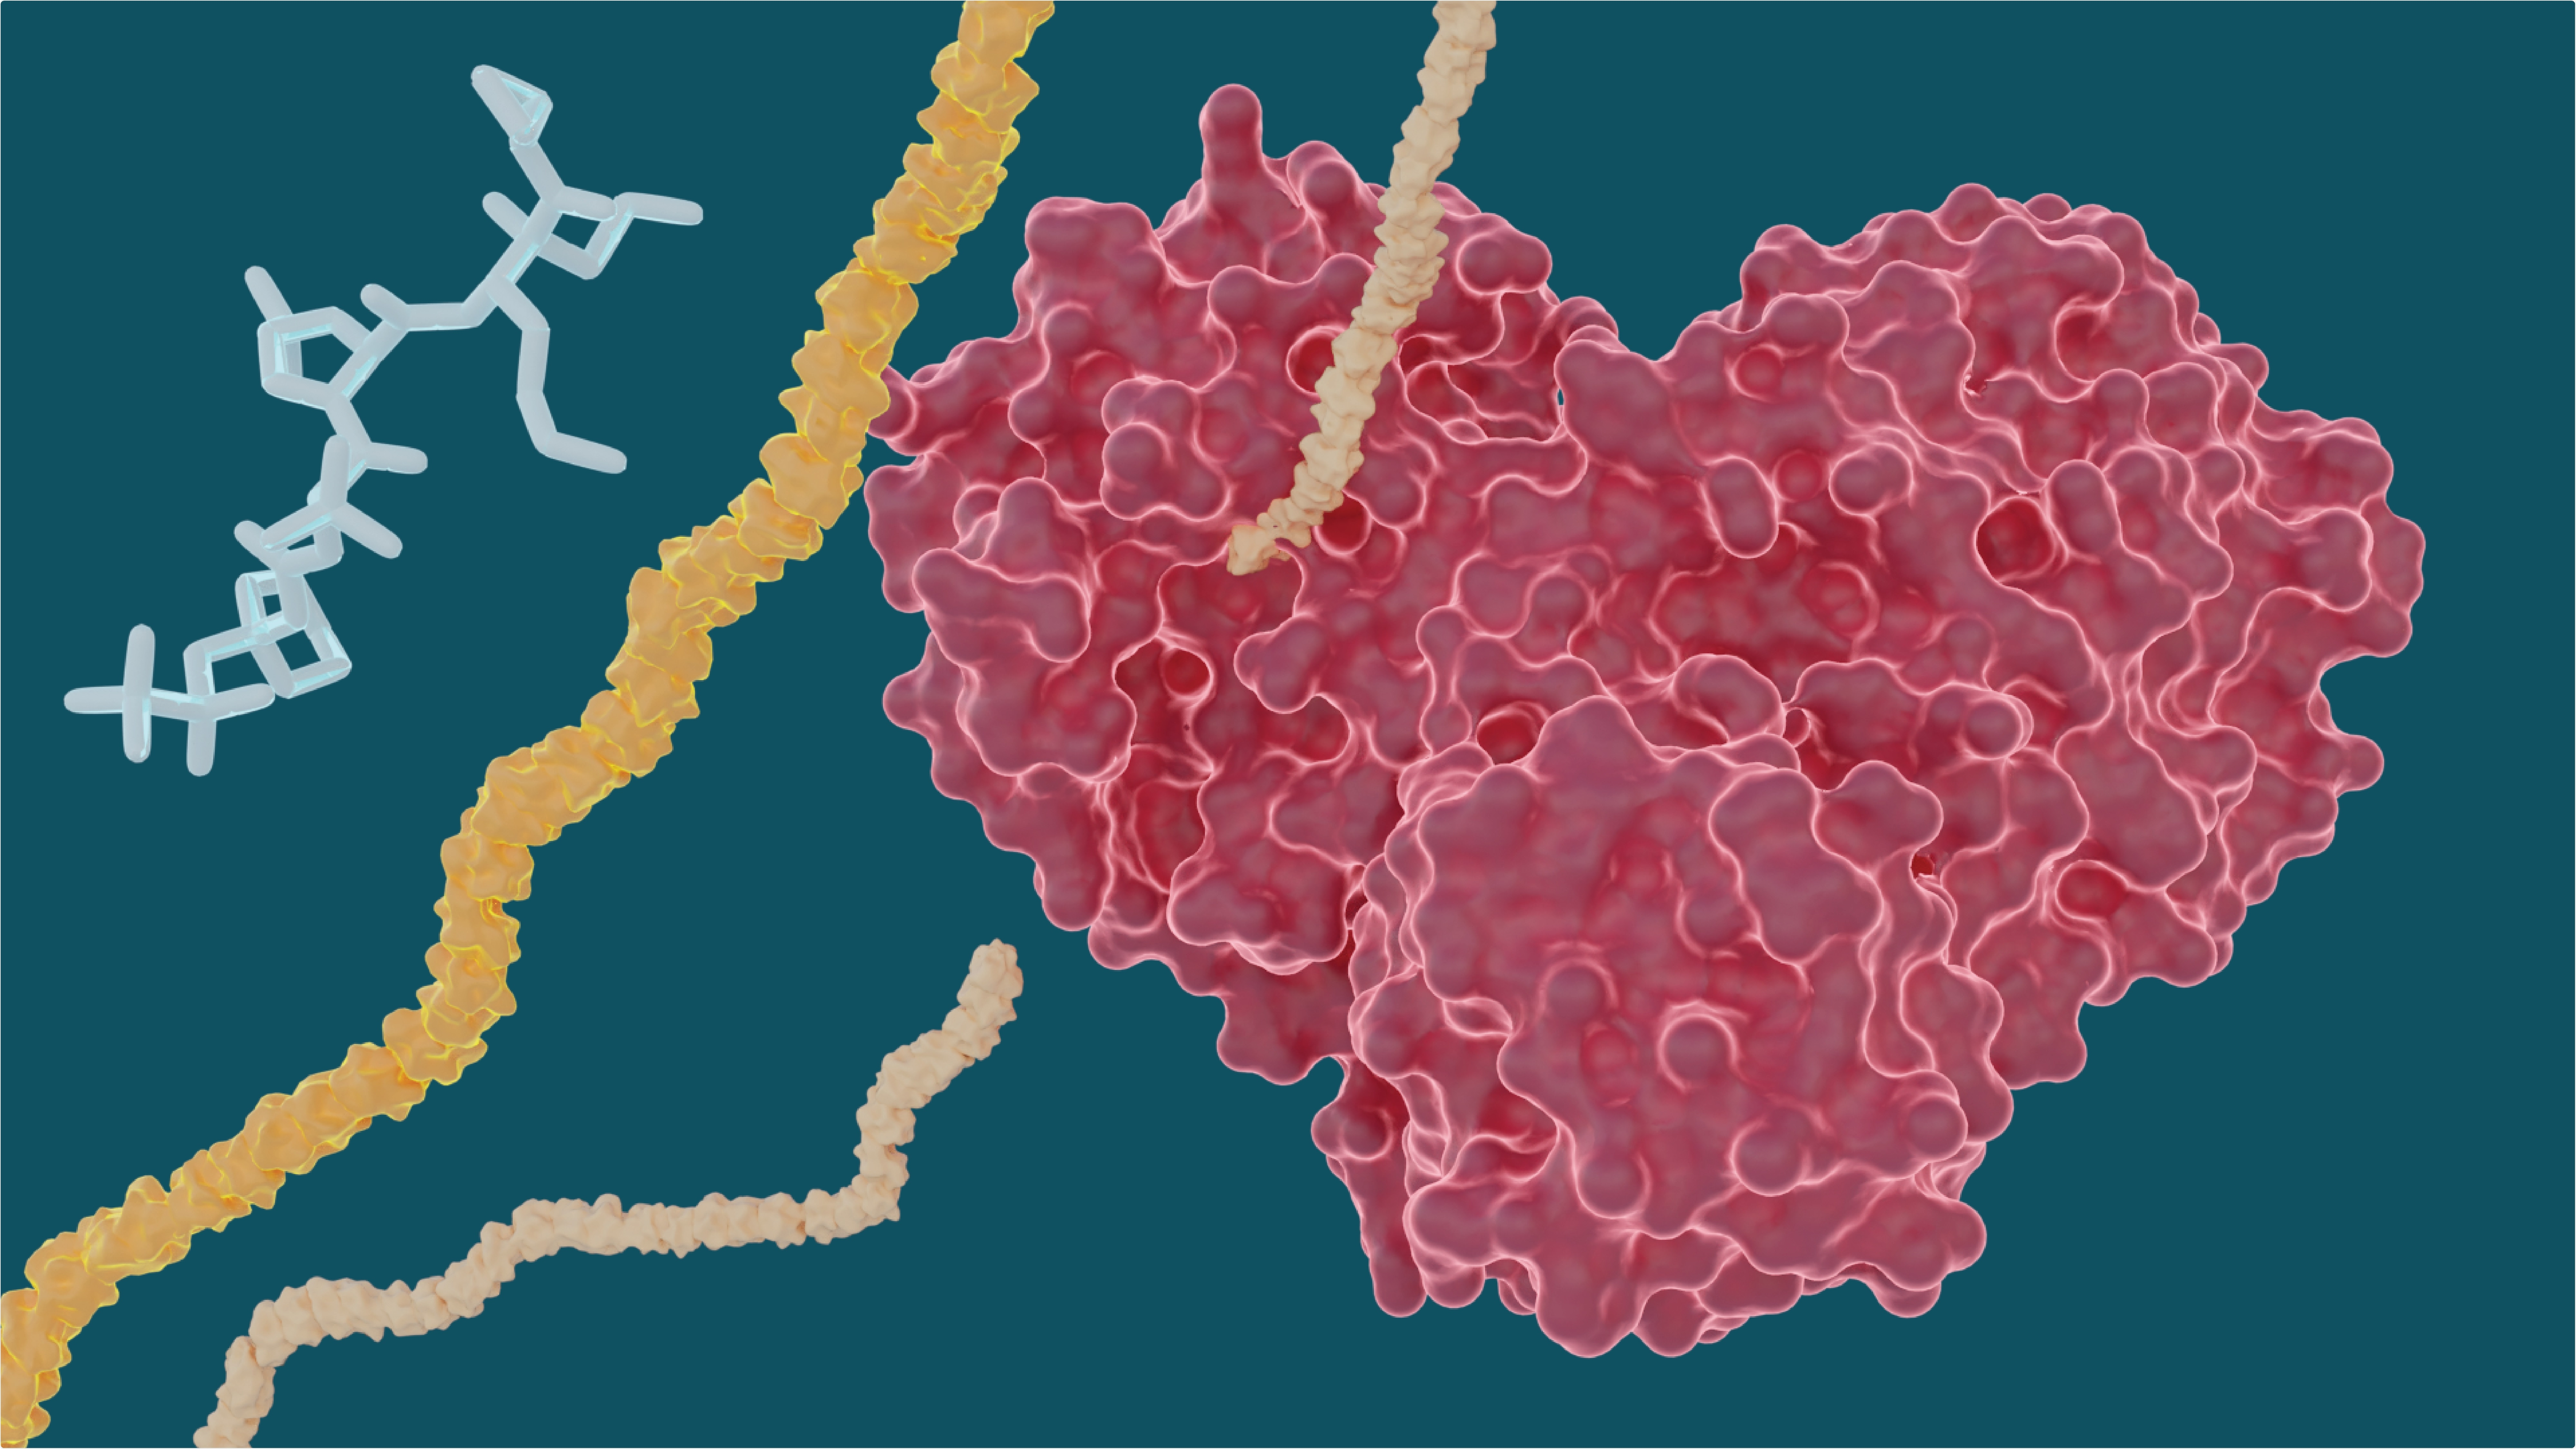 Existing hepatitis C drugs could treat COVID-19